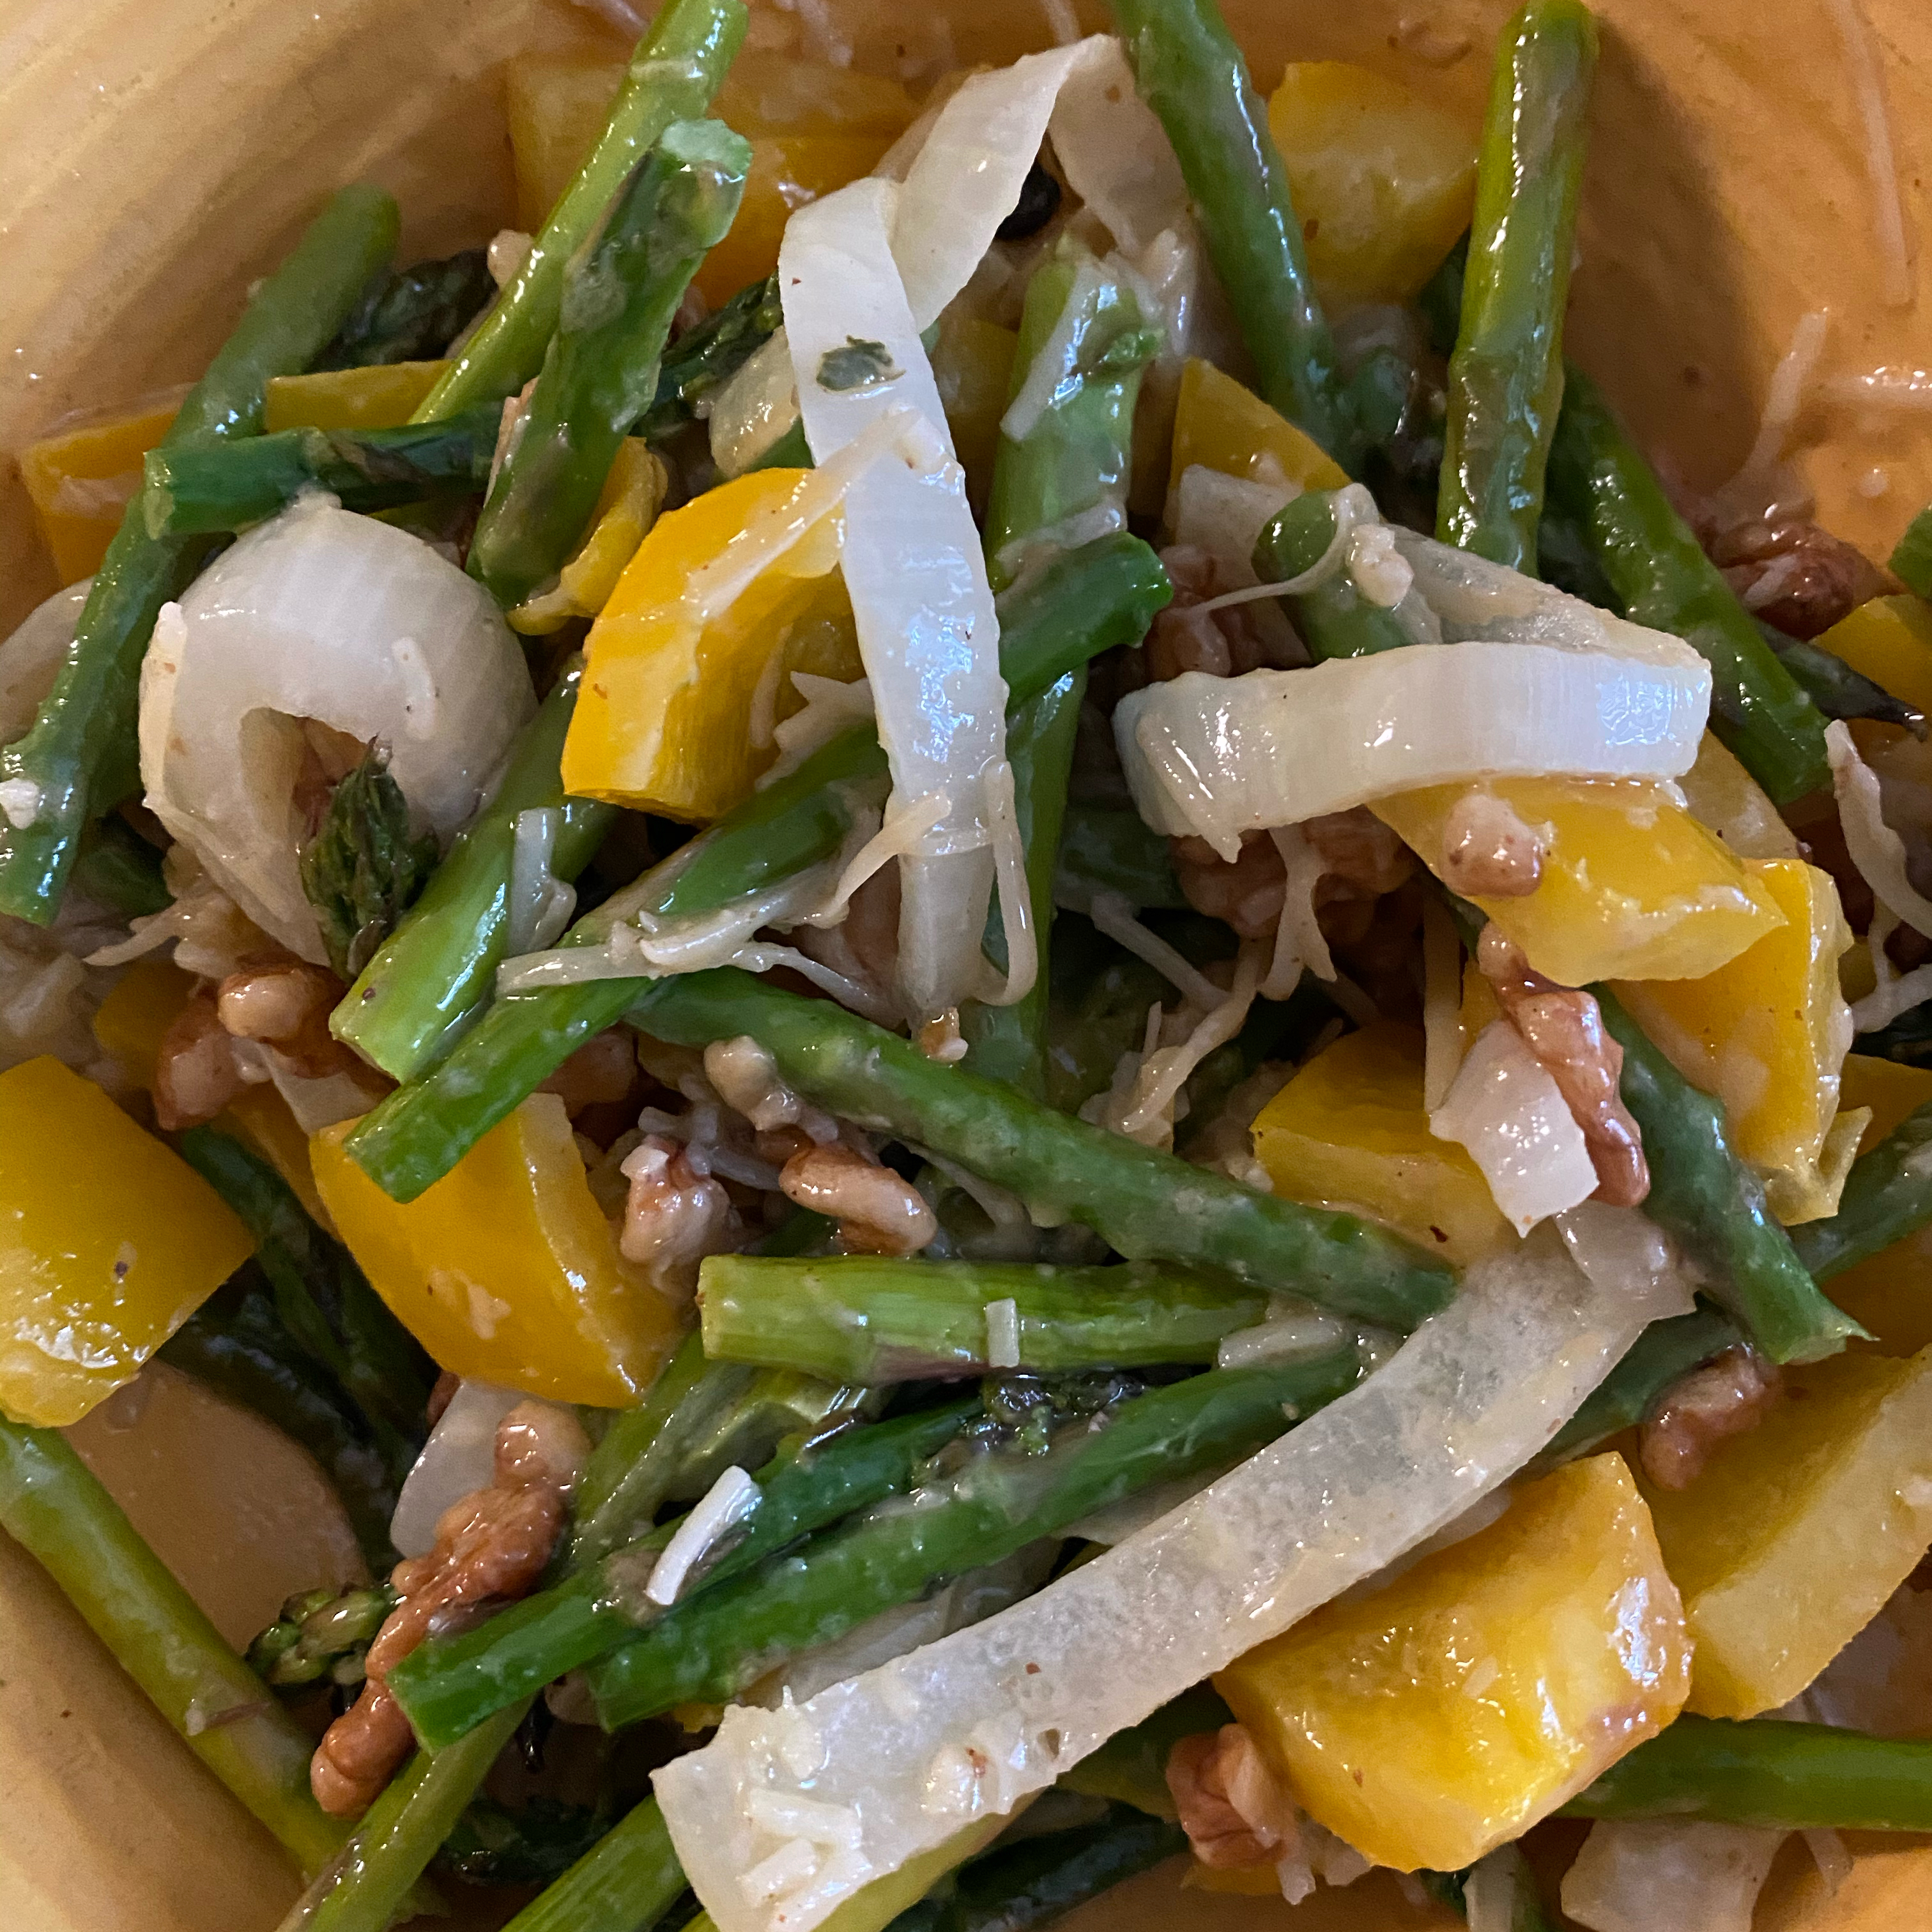 Roasted Asparagus and Yellow Pepper Salad joverall@sbcglobal.net